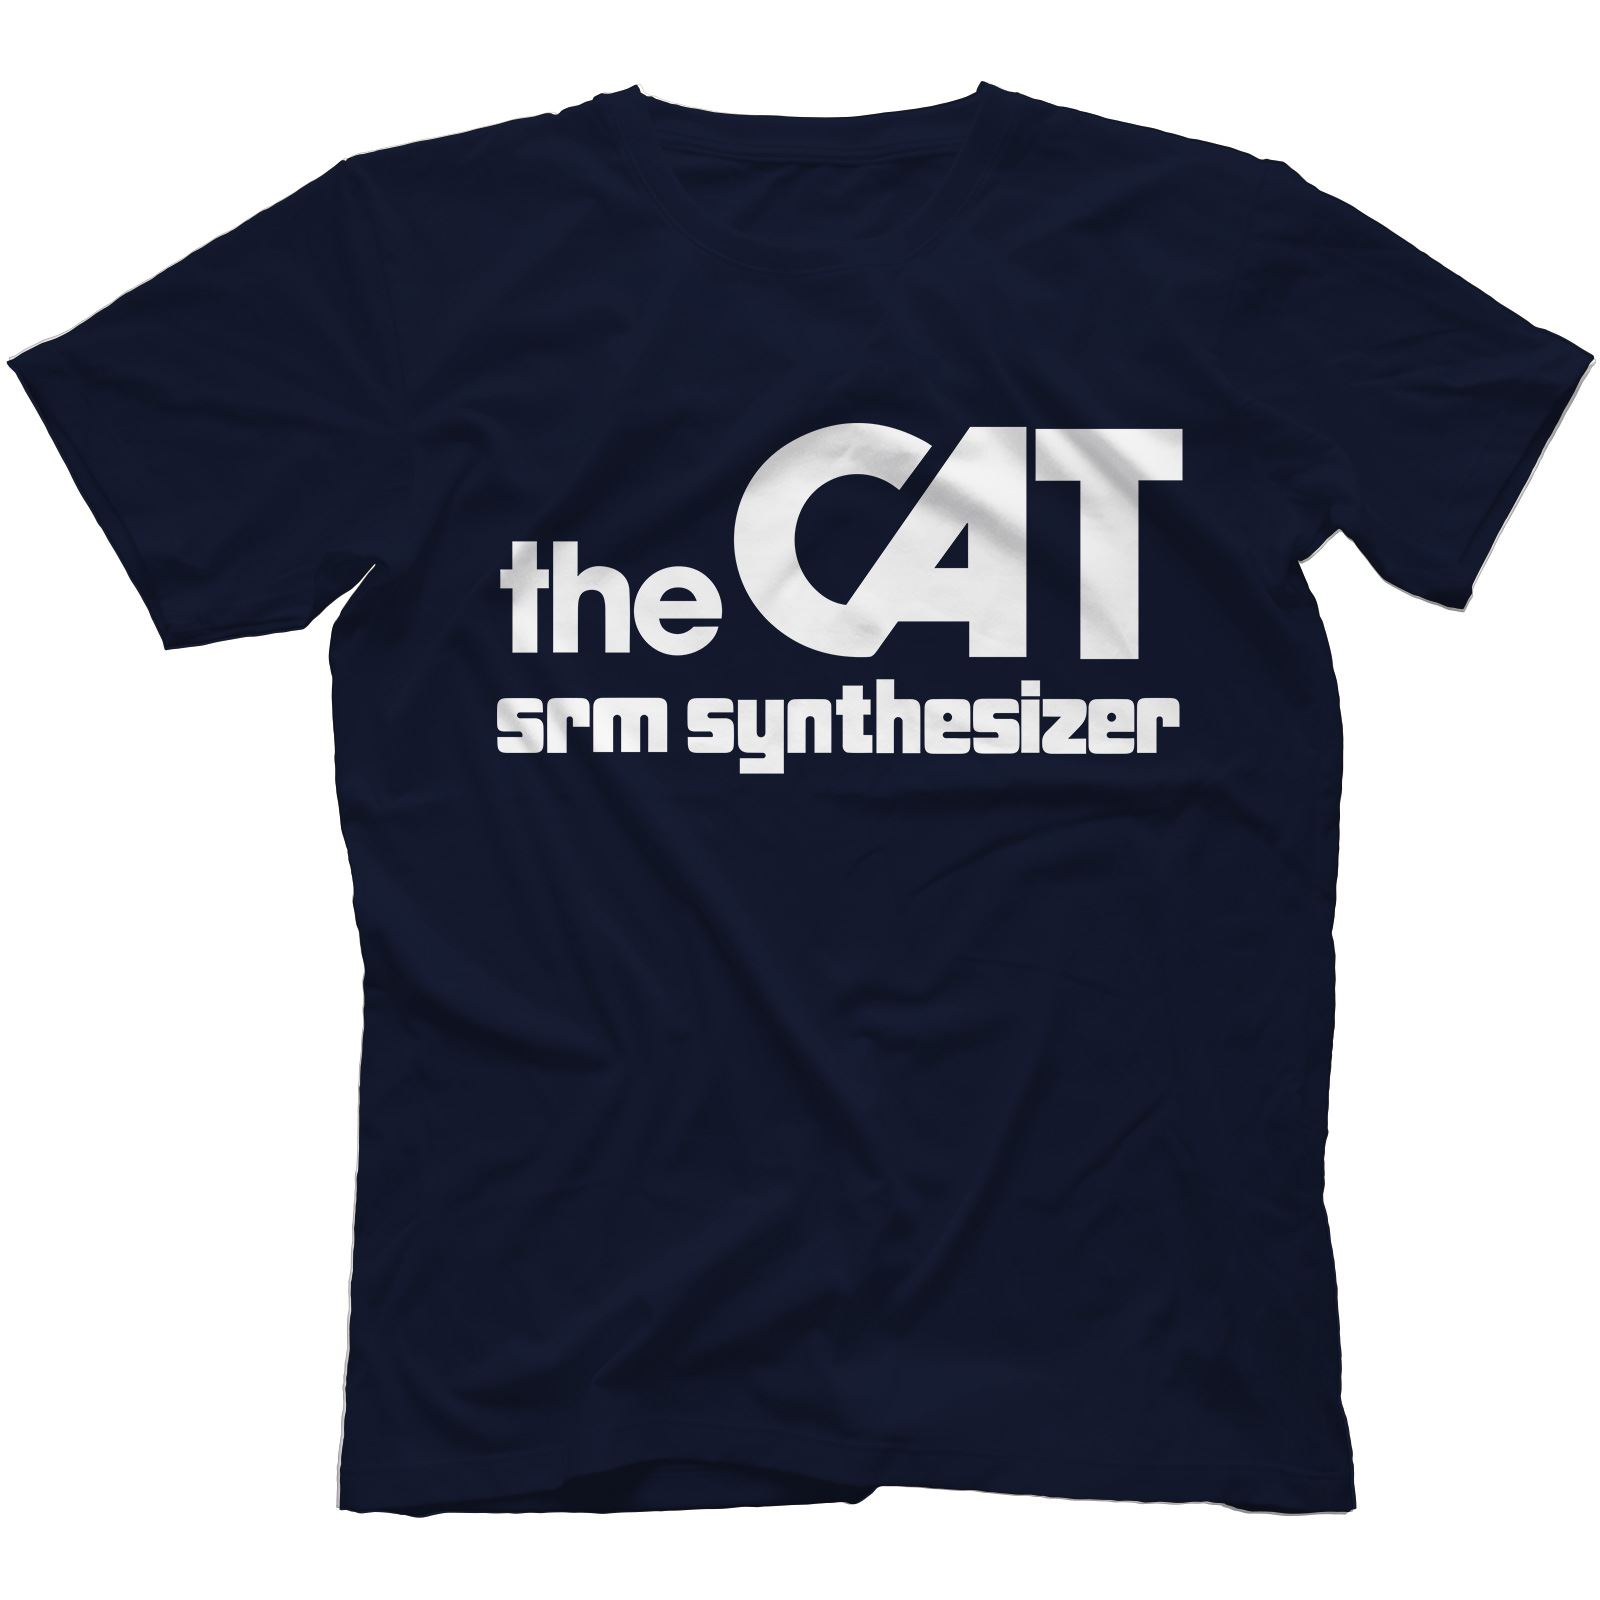 The-Cat-SRM-Synthesiser-T-Shirt-100-Cotton-Retro-Analog-Arp-Odyssey Indexbild 40